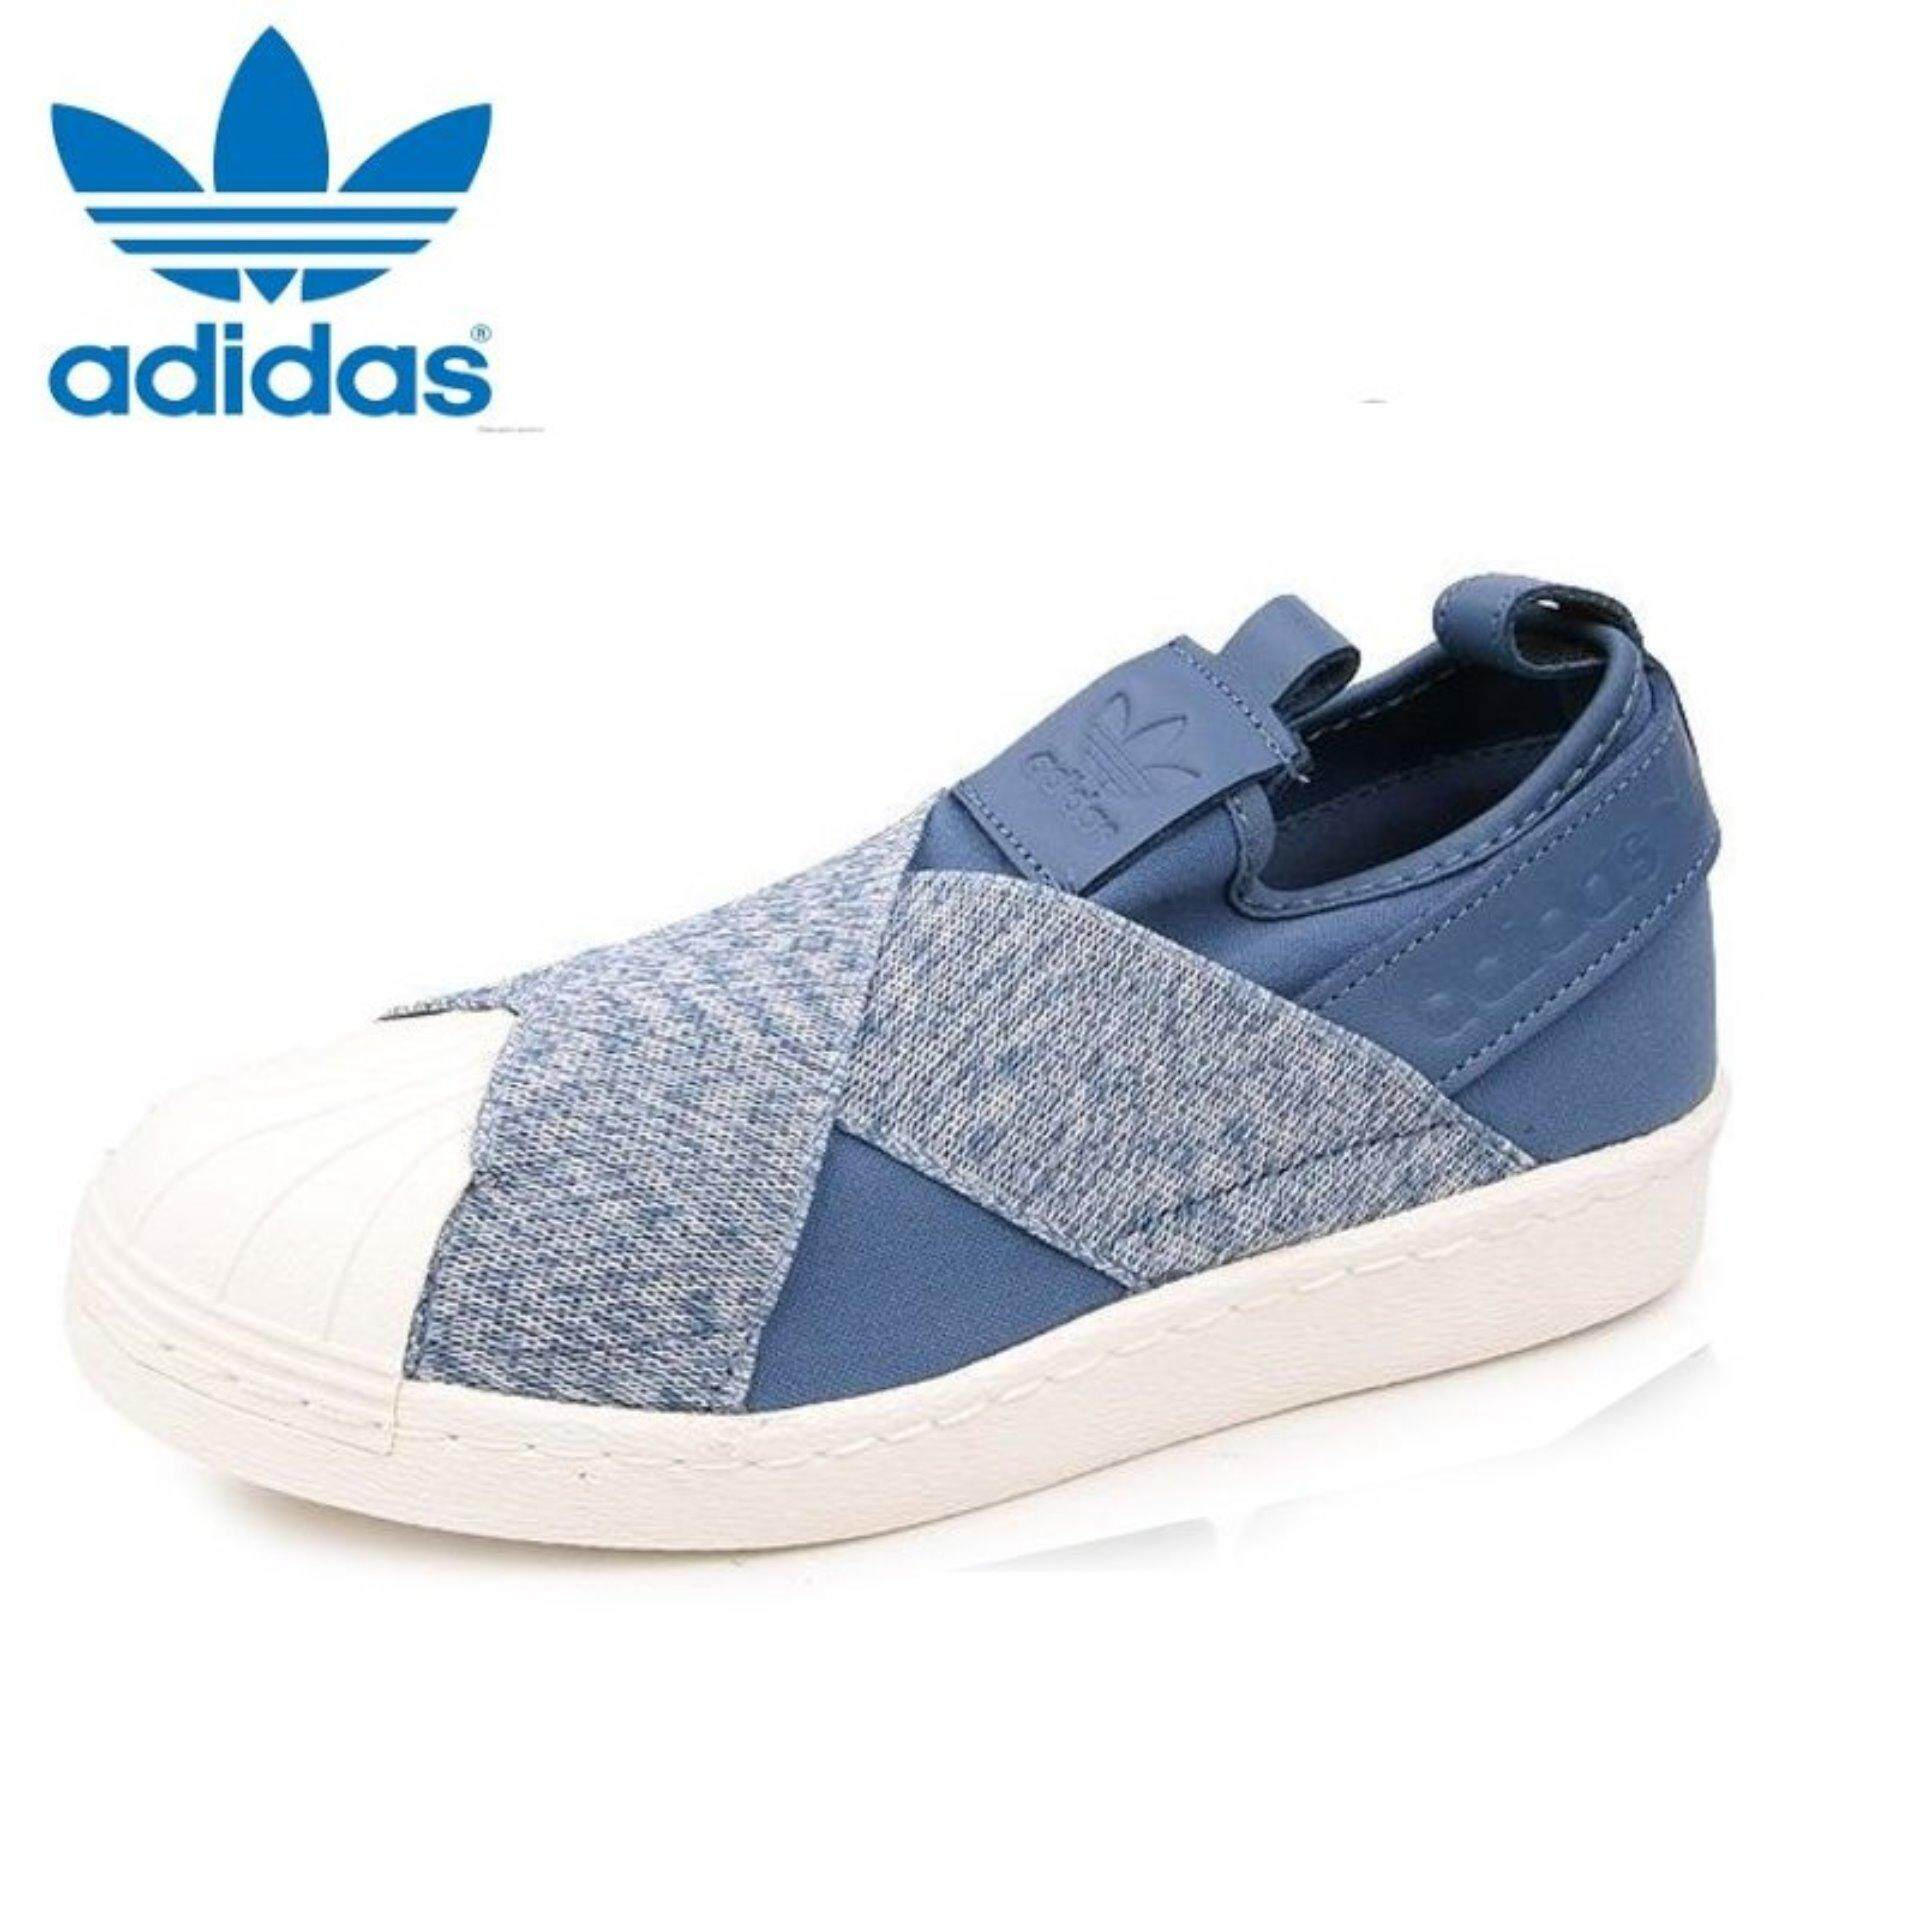 Adidas Originals Superstar Slip-on Shoes S76410 Express Tech Ink - intl |  Lazada PH